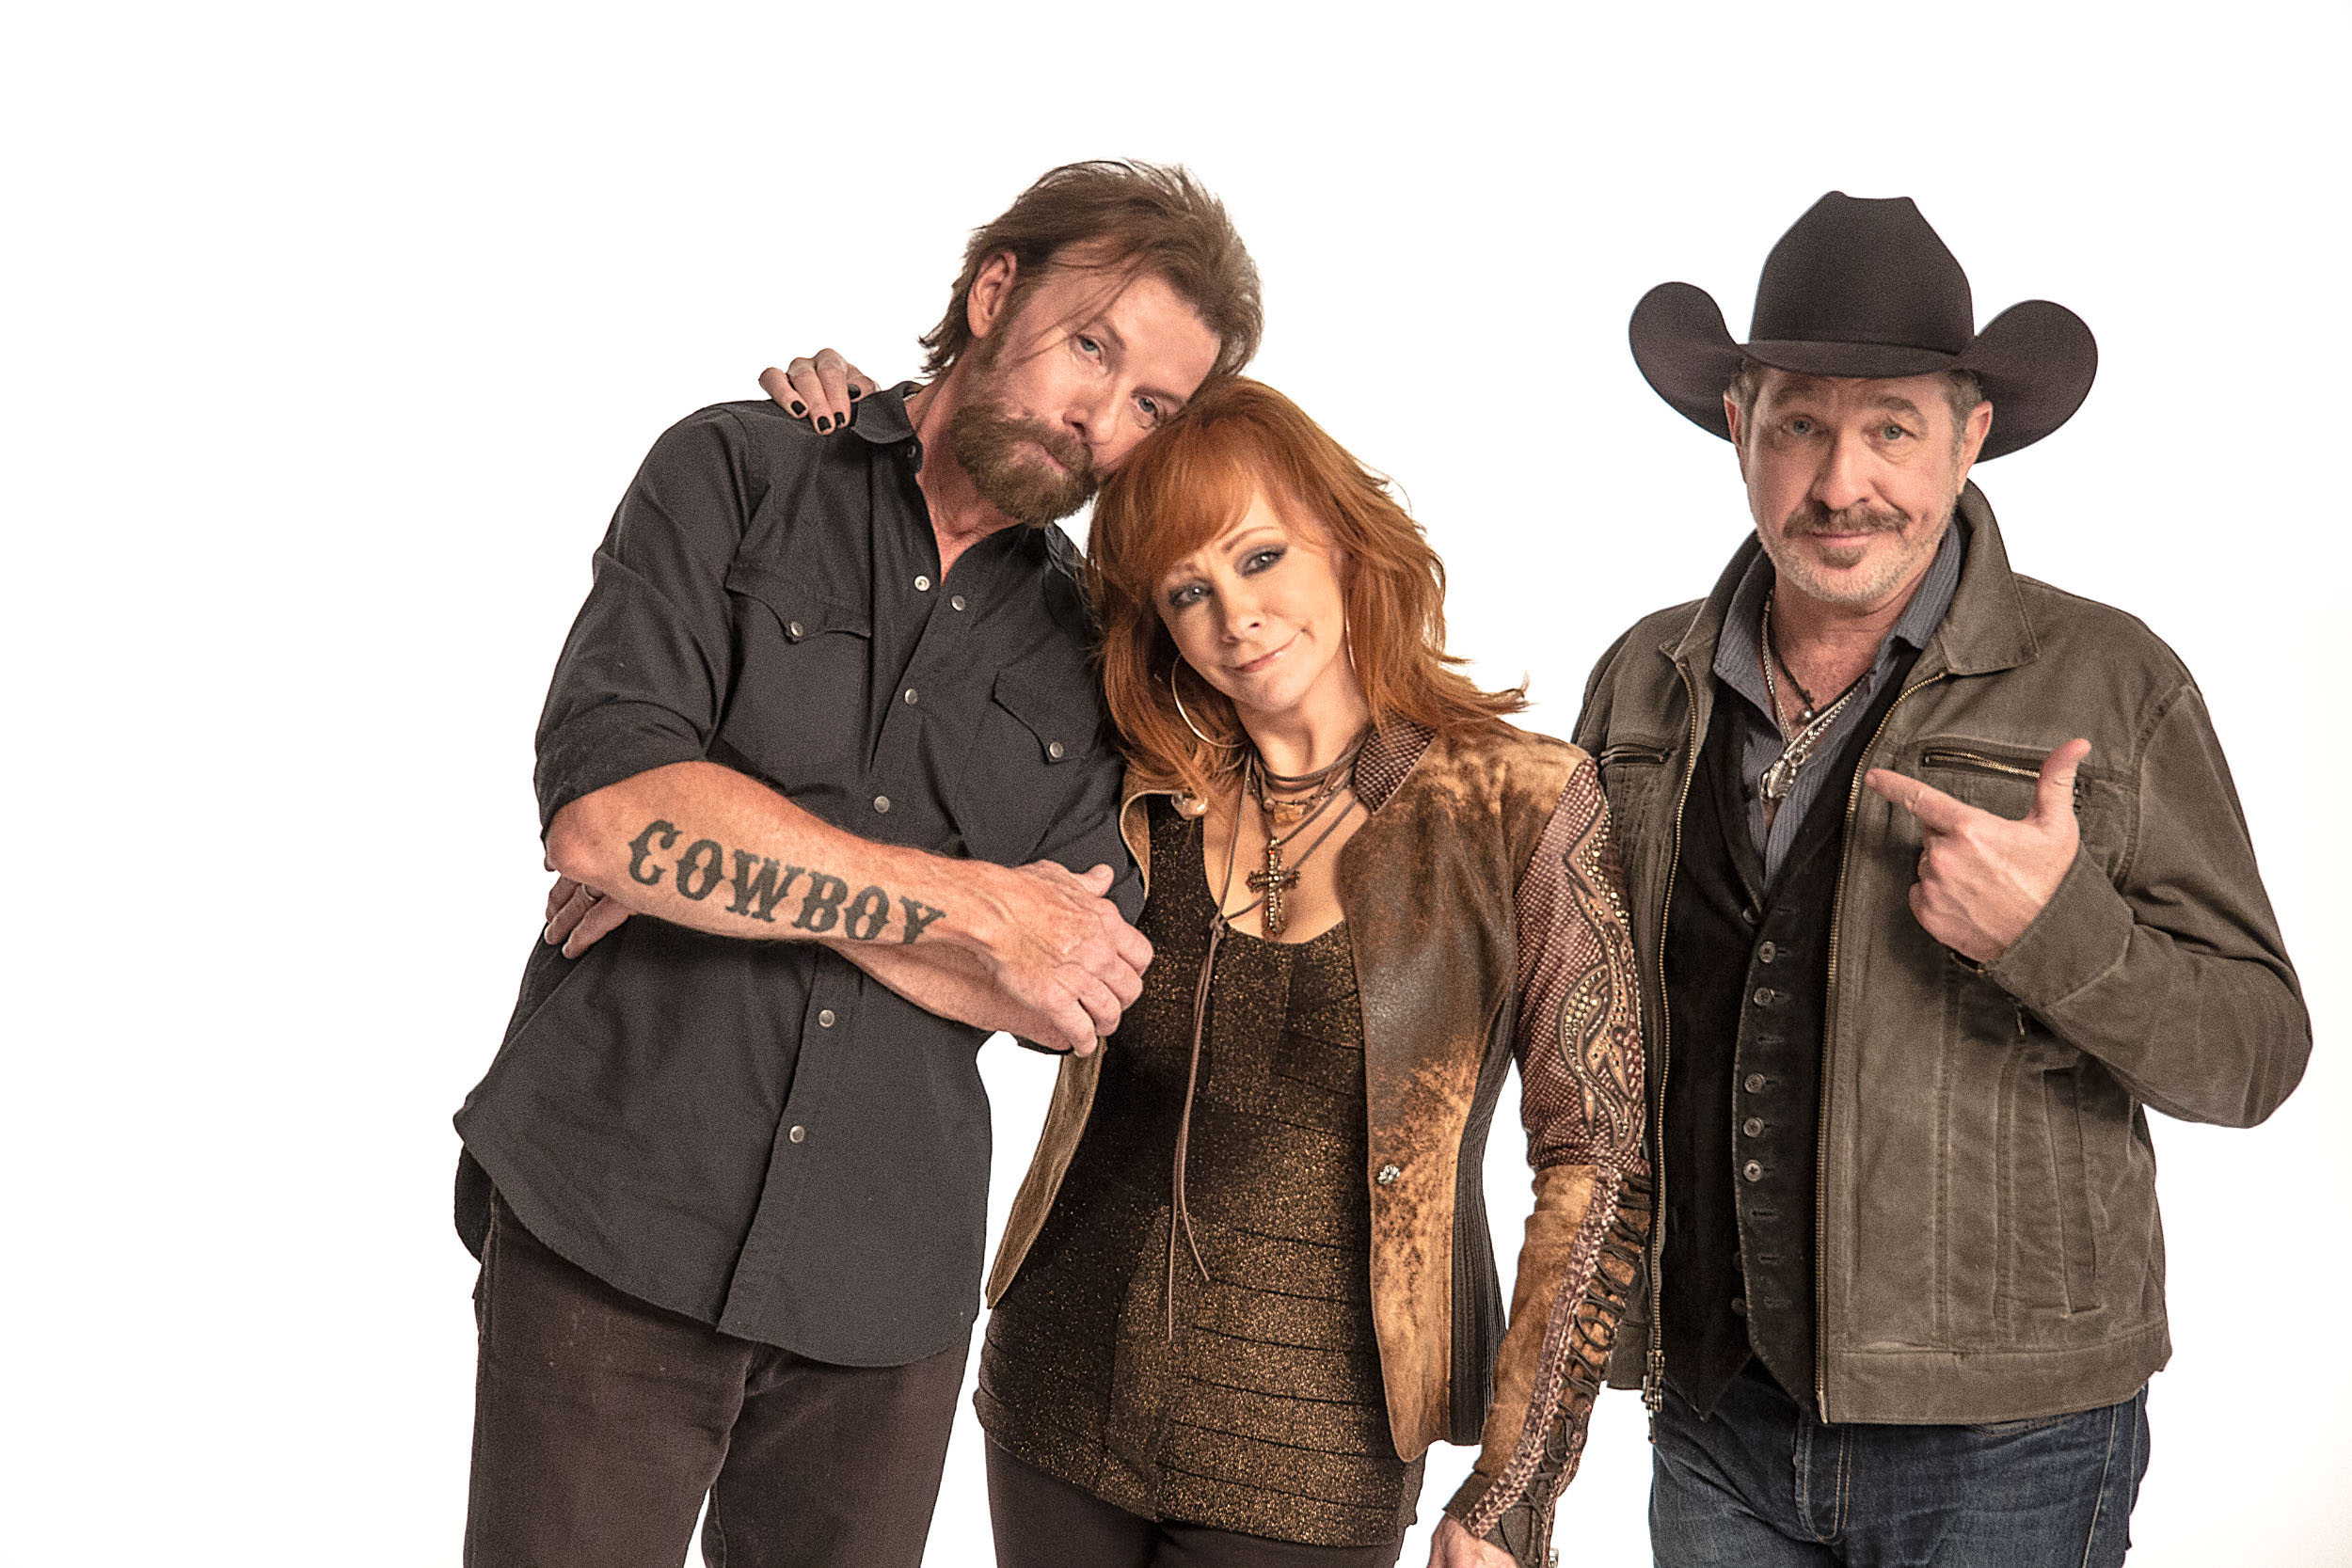 Ronnie, Reba and Kix, by Steven Martine, music celebrity photographer